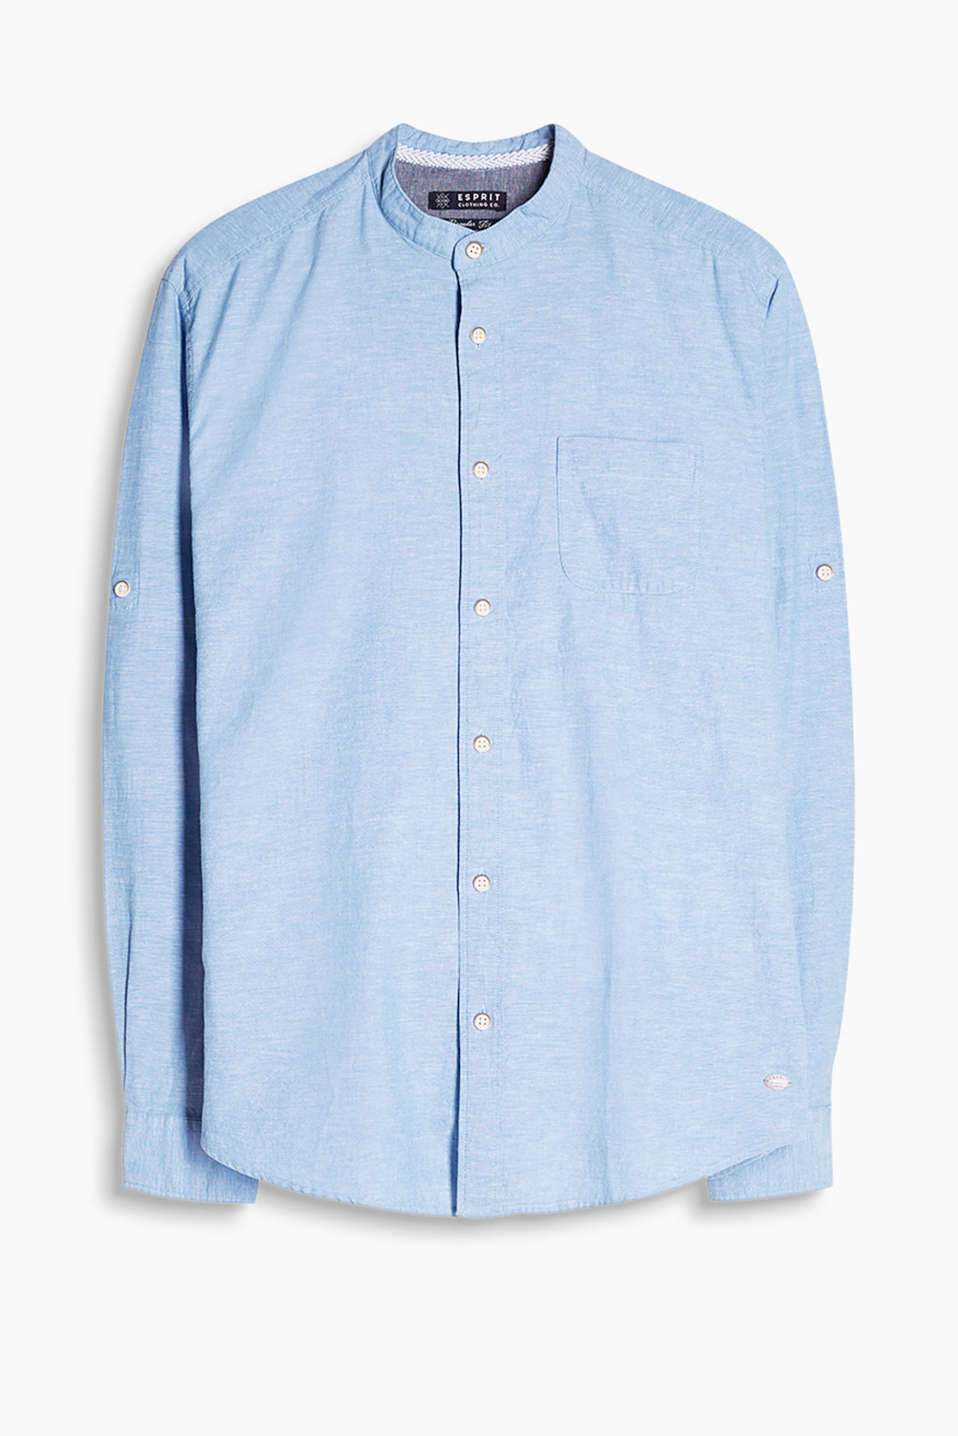 Shirt in a soft cotton/linen blend with a stand-up collar, breast pocket and turn-up sleeves